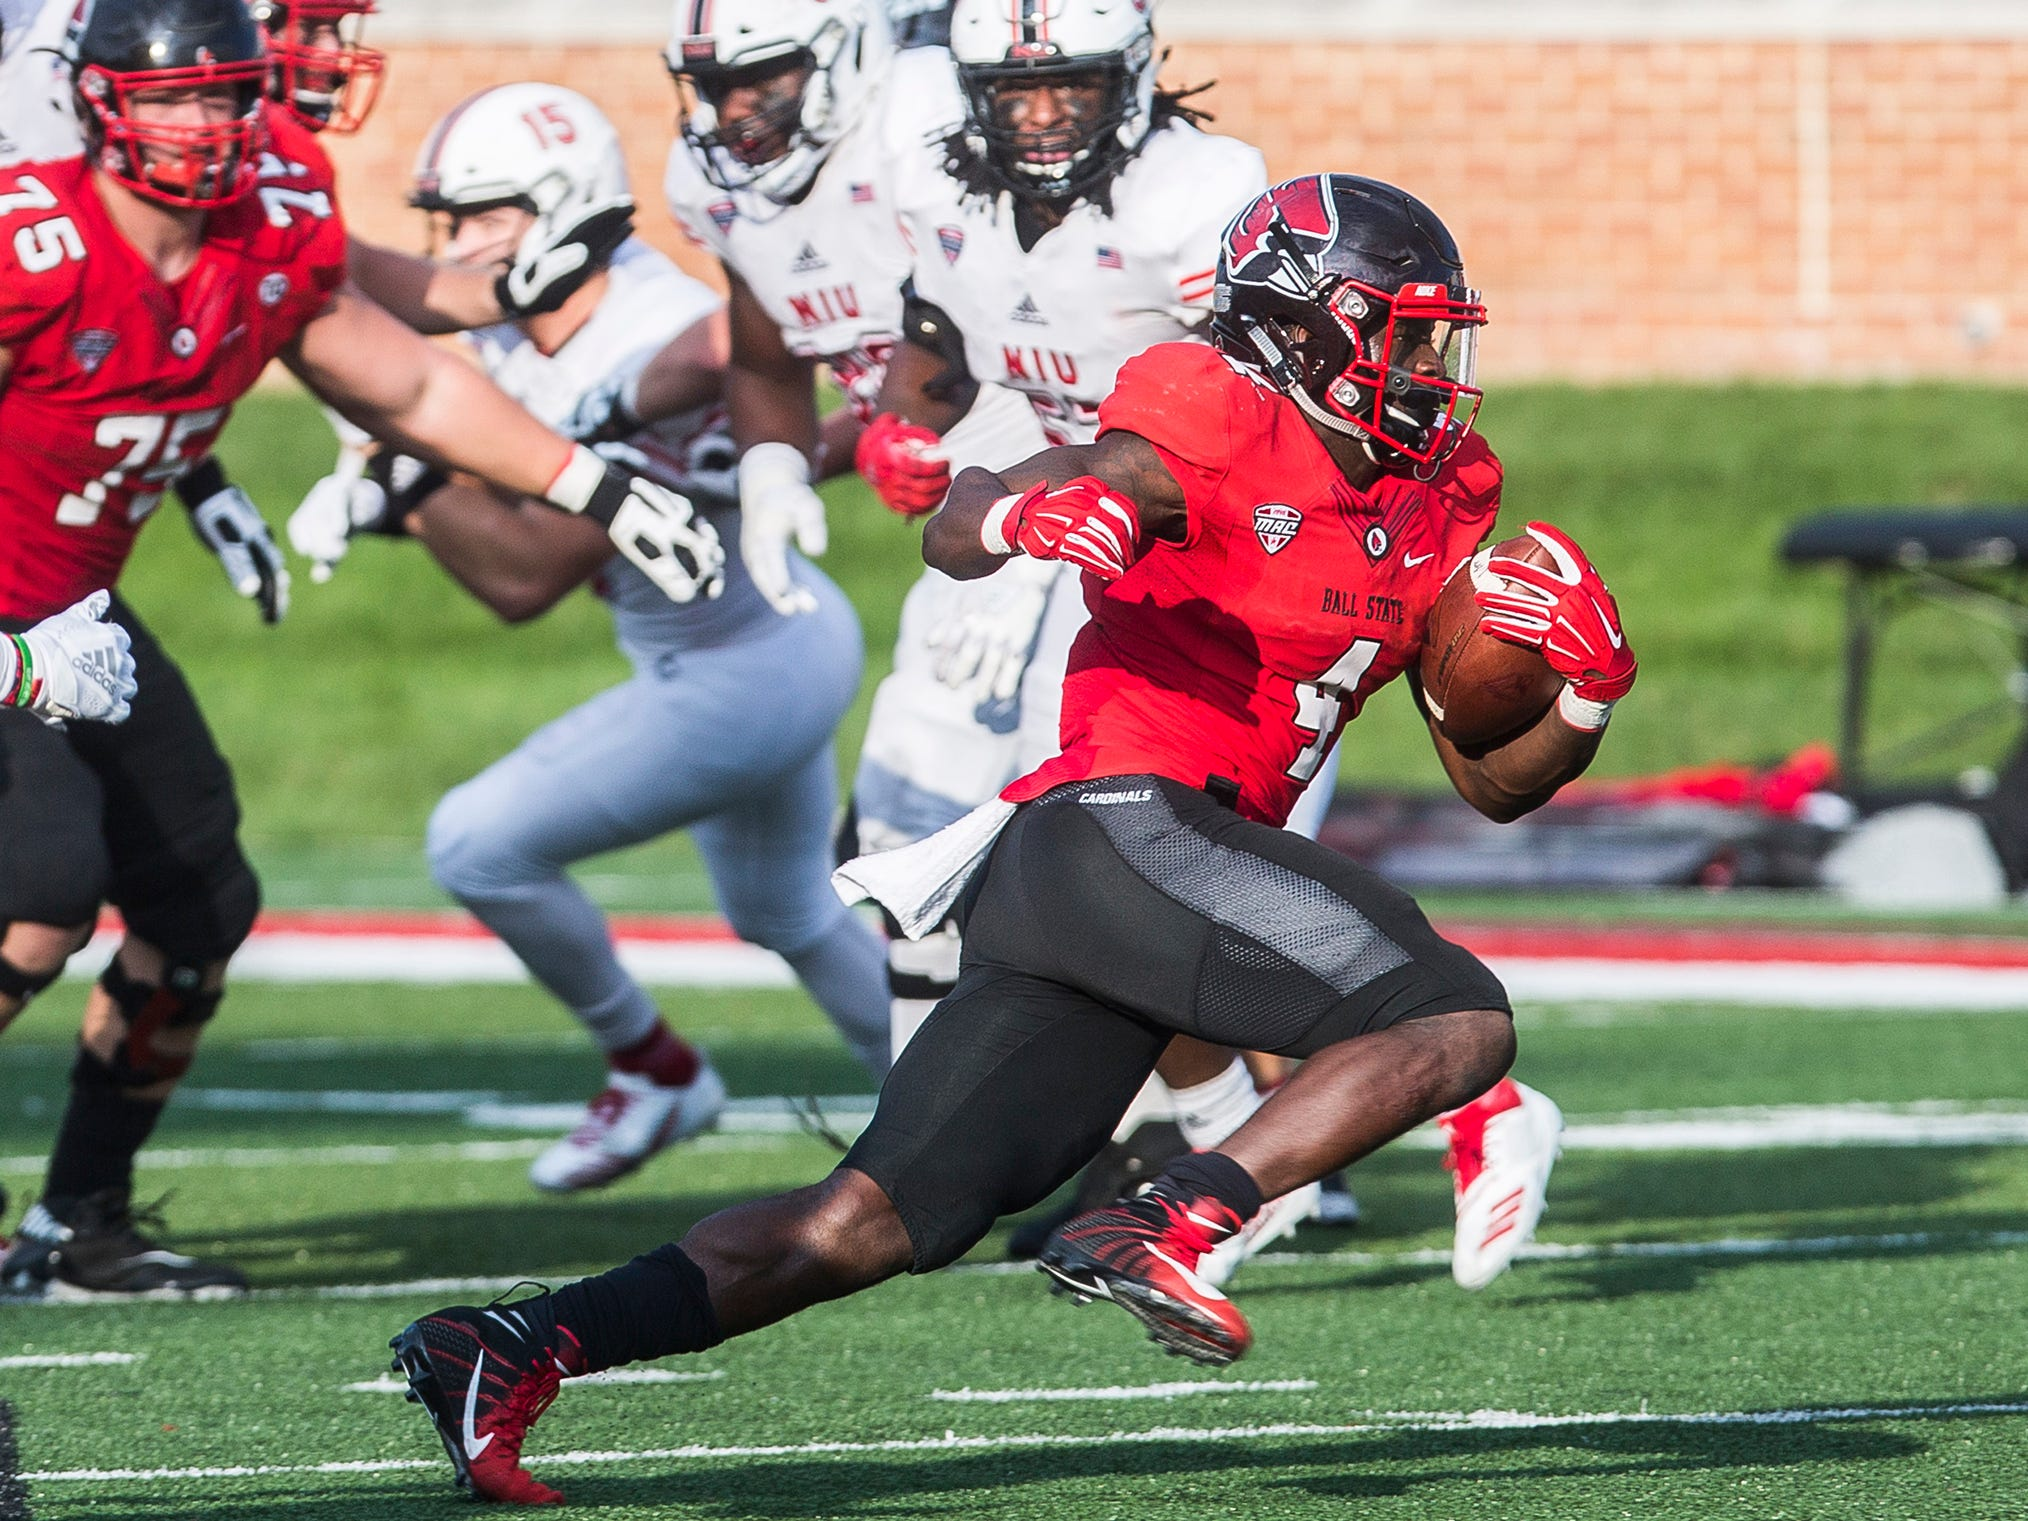 Ball State vs. Eastern Michigan football: How to watch, odds, depth chart